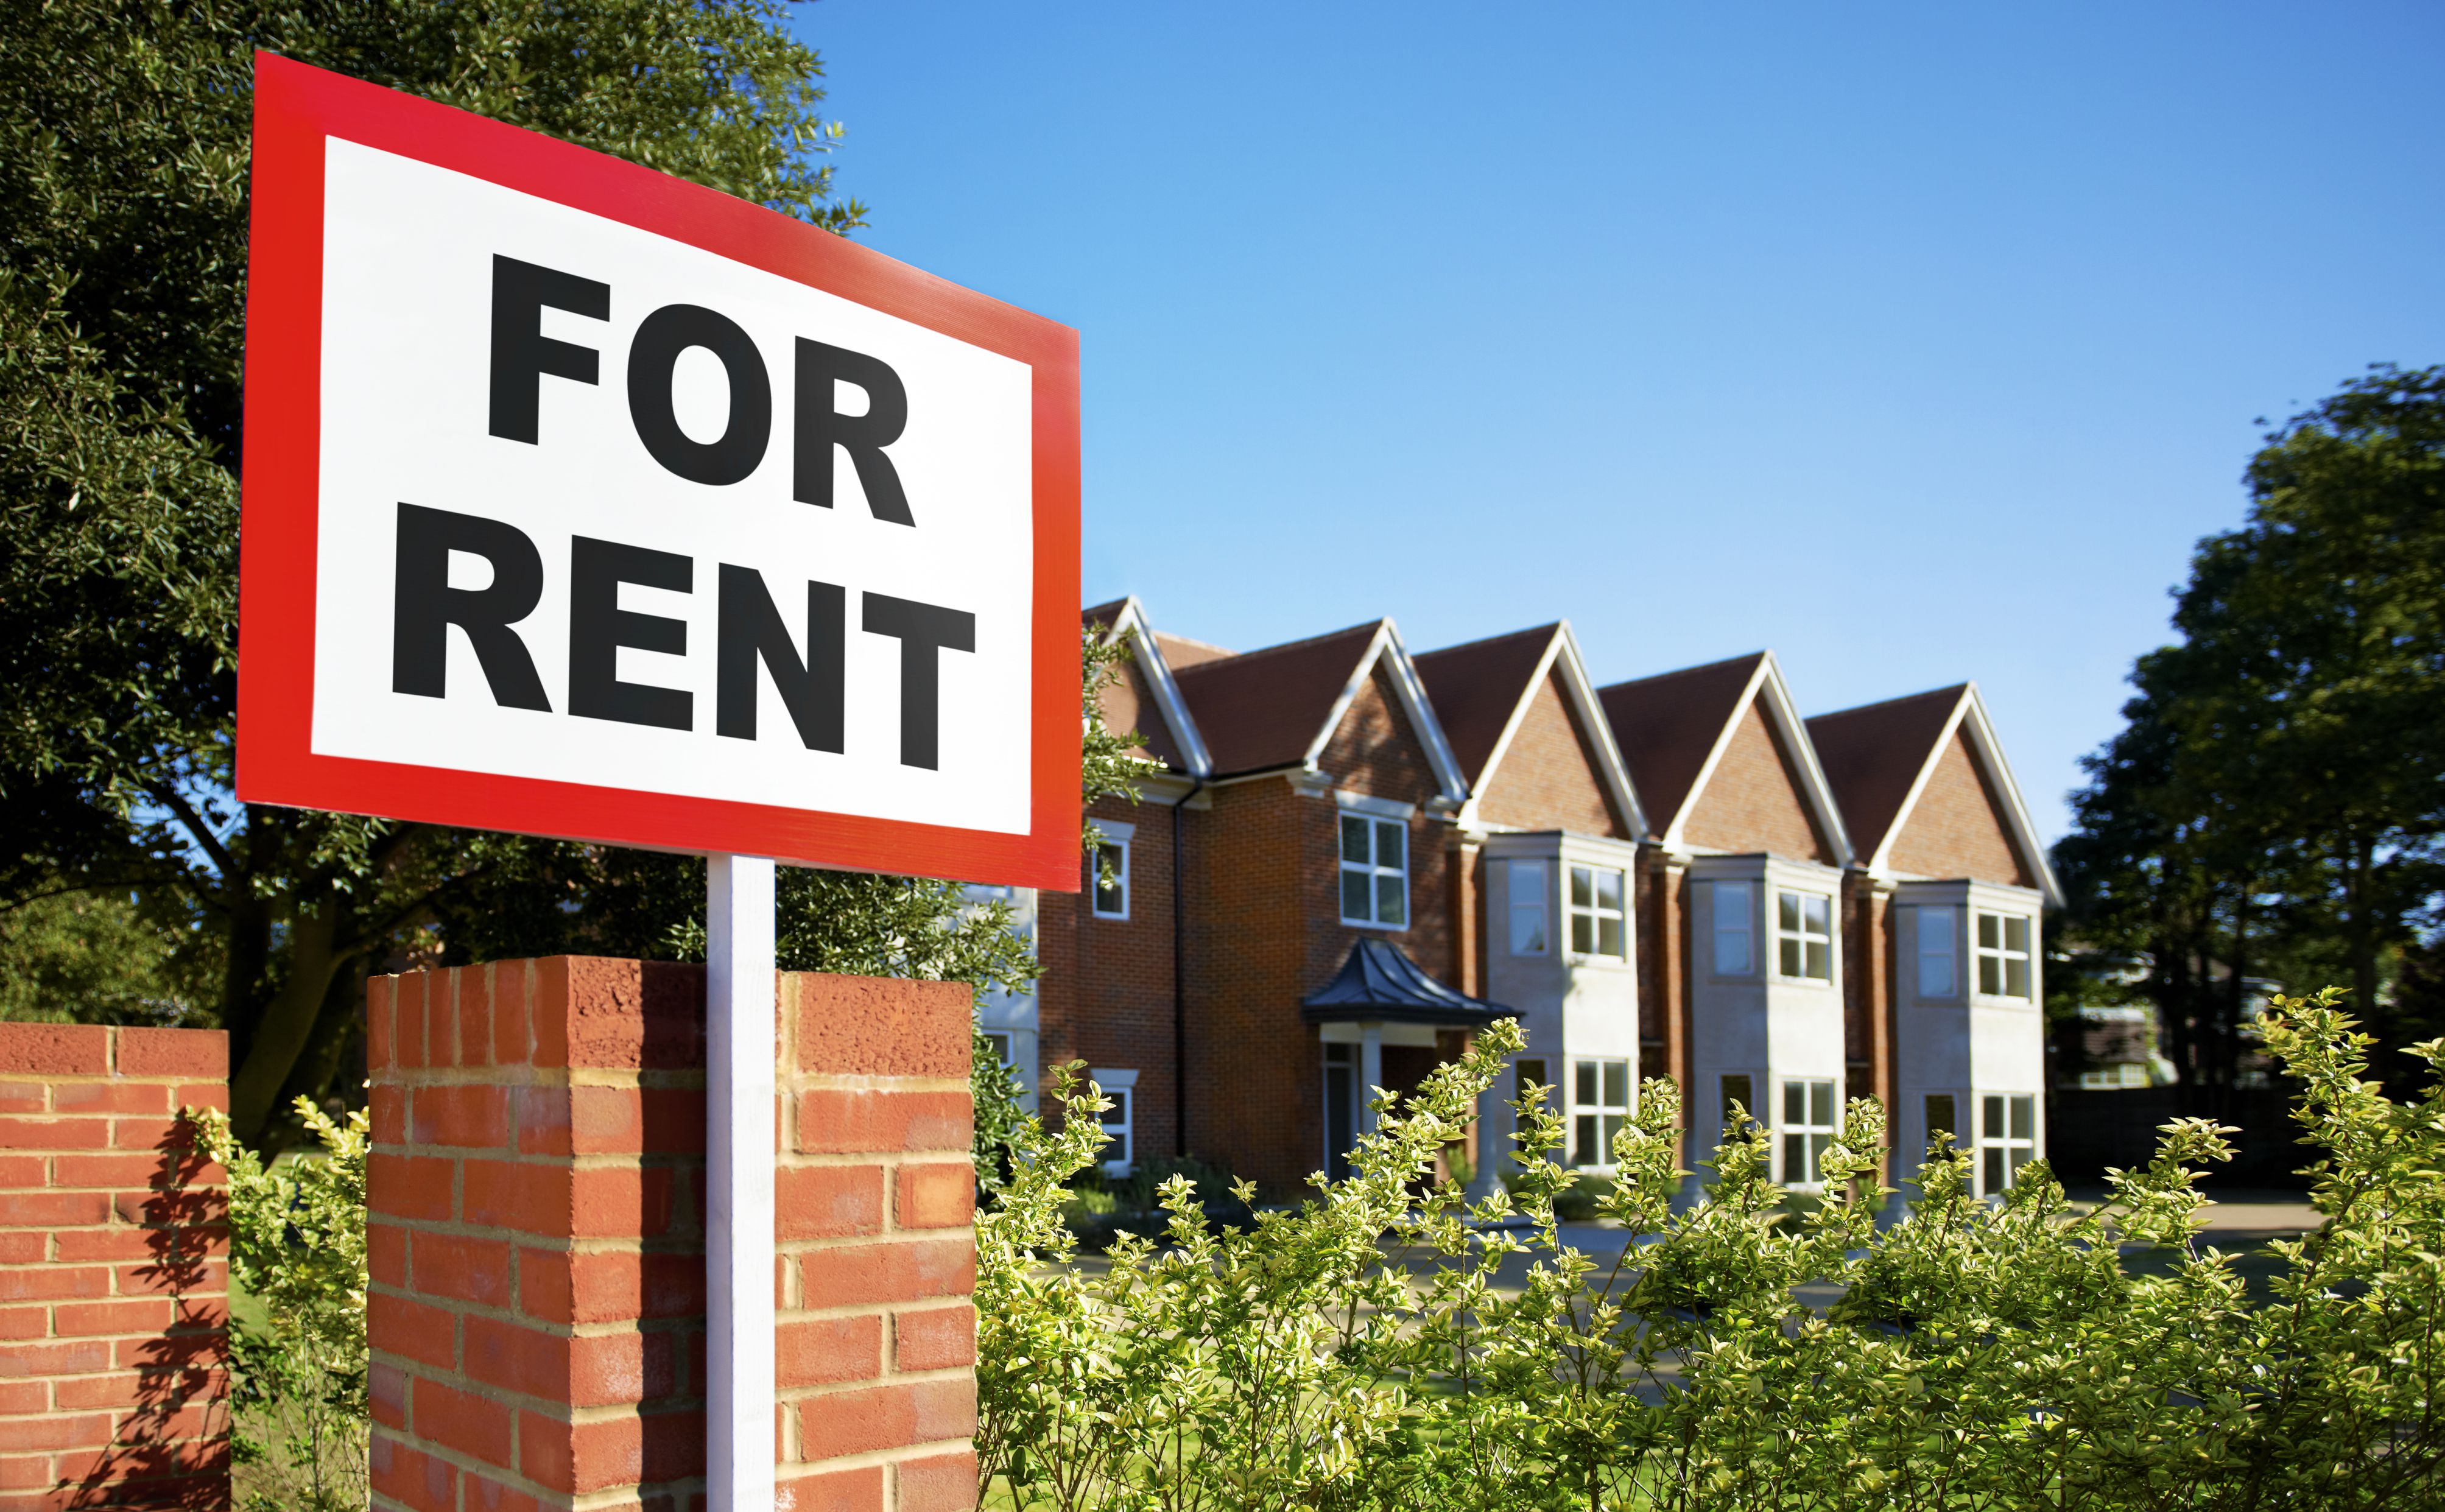 Lease Arbitration Clause And Rights To Sue A Landlord